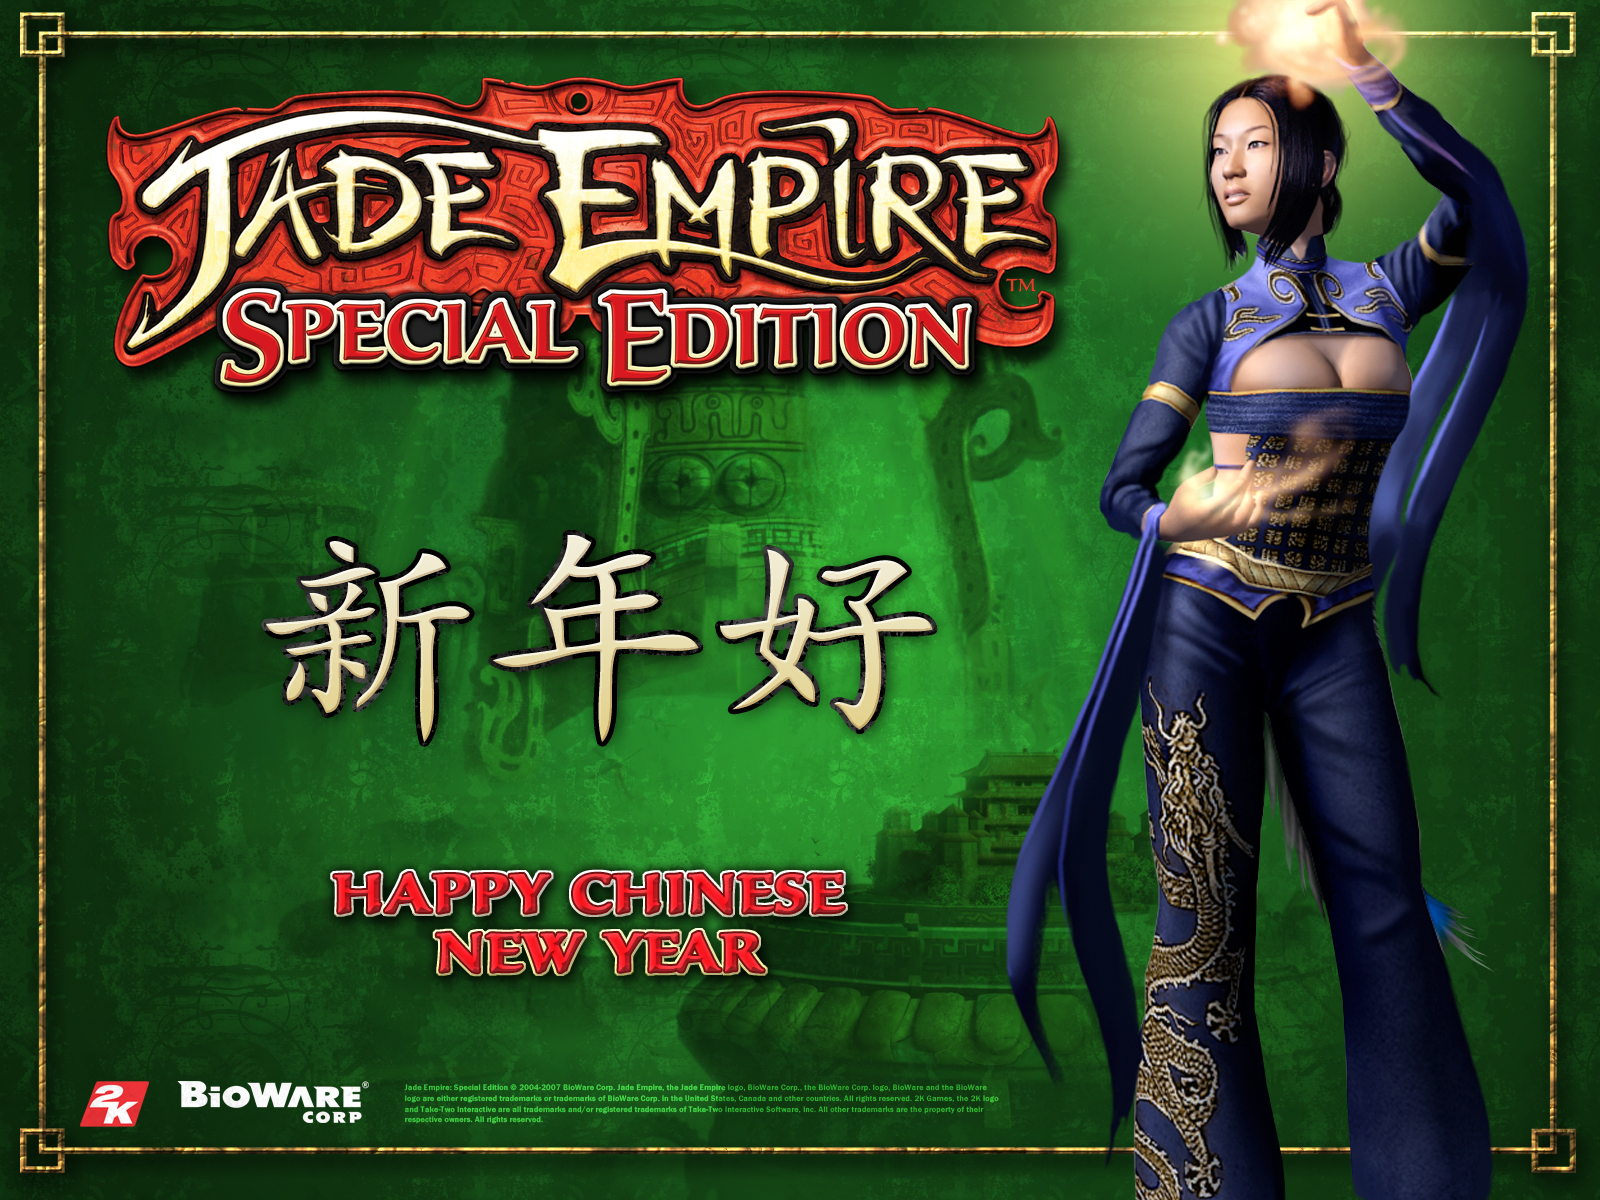 Jade_Empire_05_1600x1200.jpg